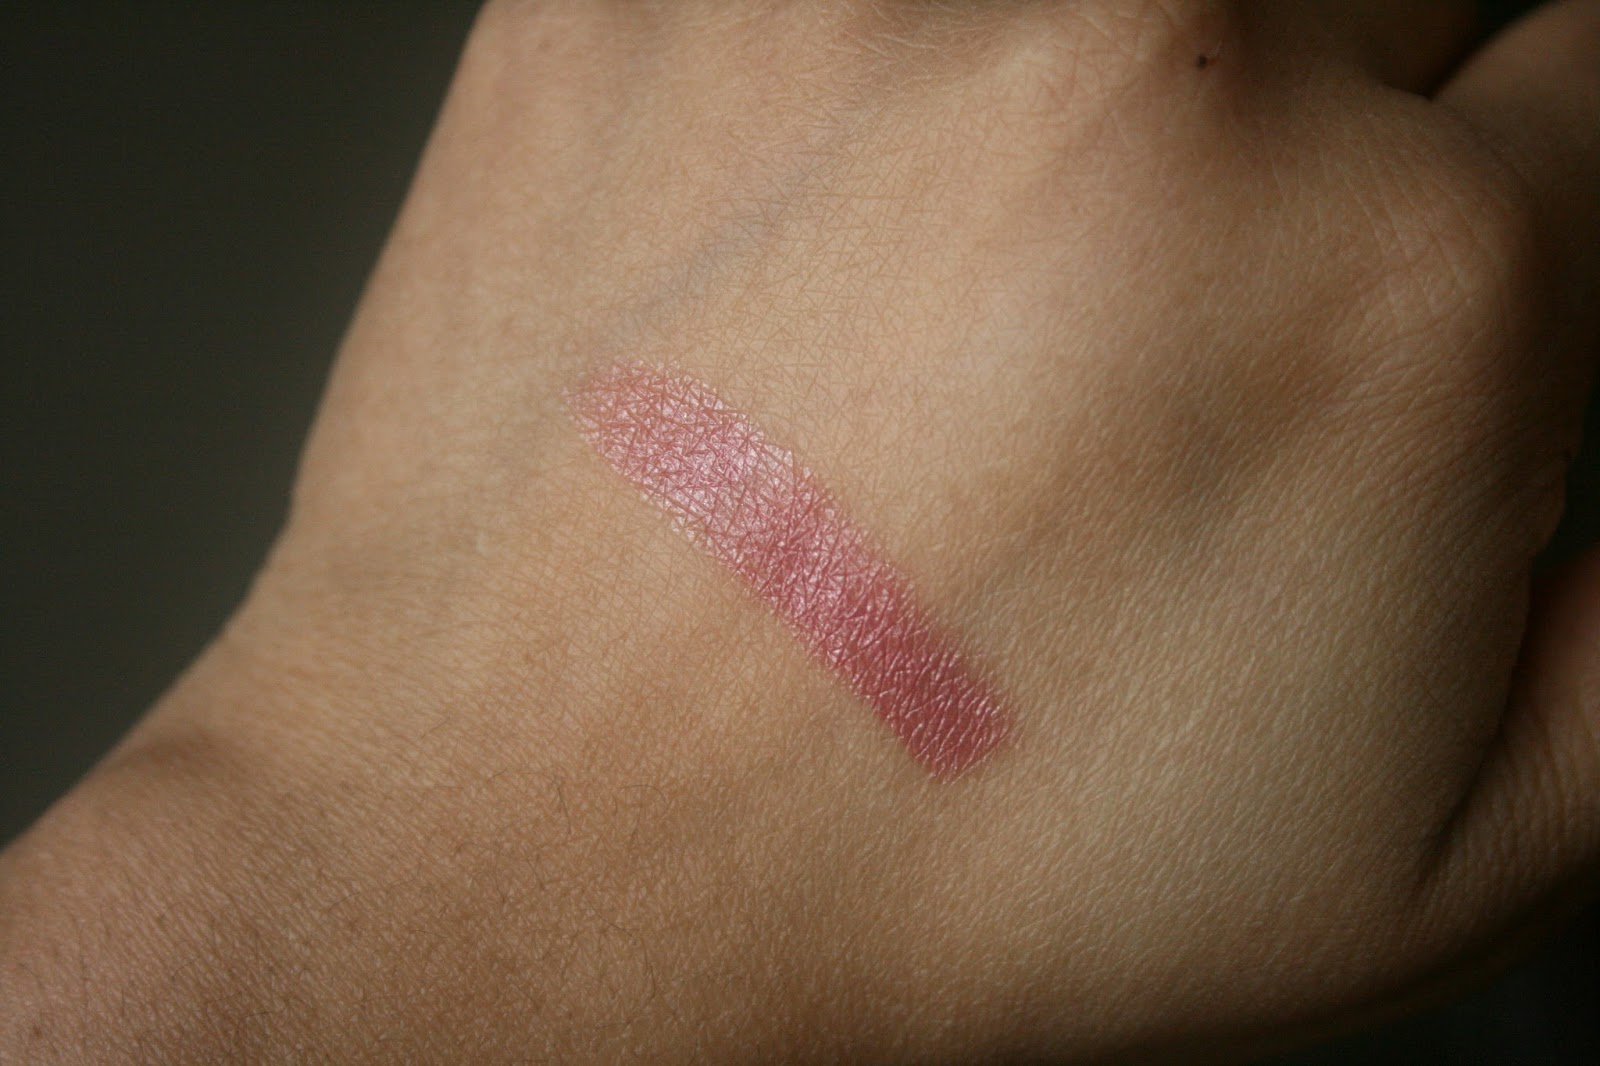 Guerlain Kiss Kiss Lipstick In Beige Booster #303 Swatch